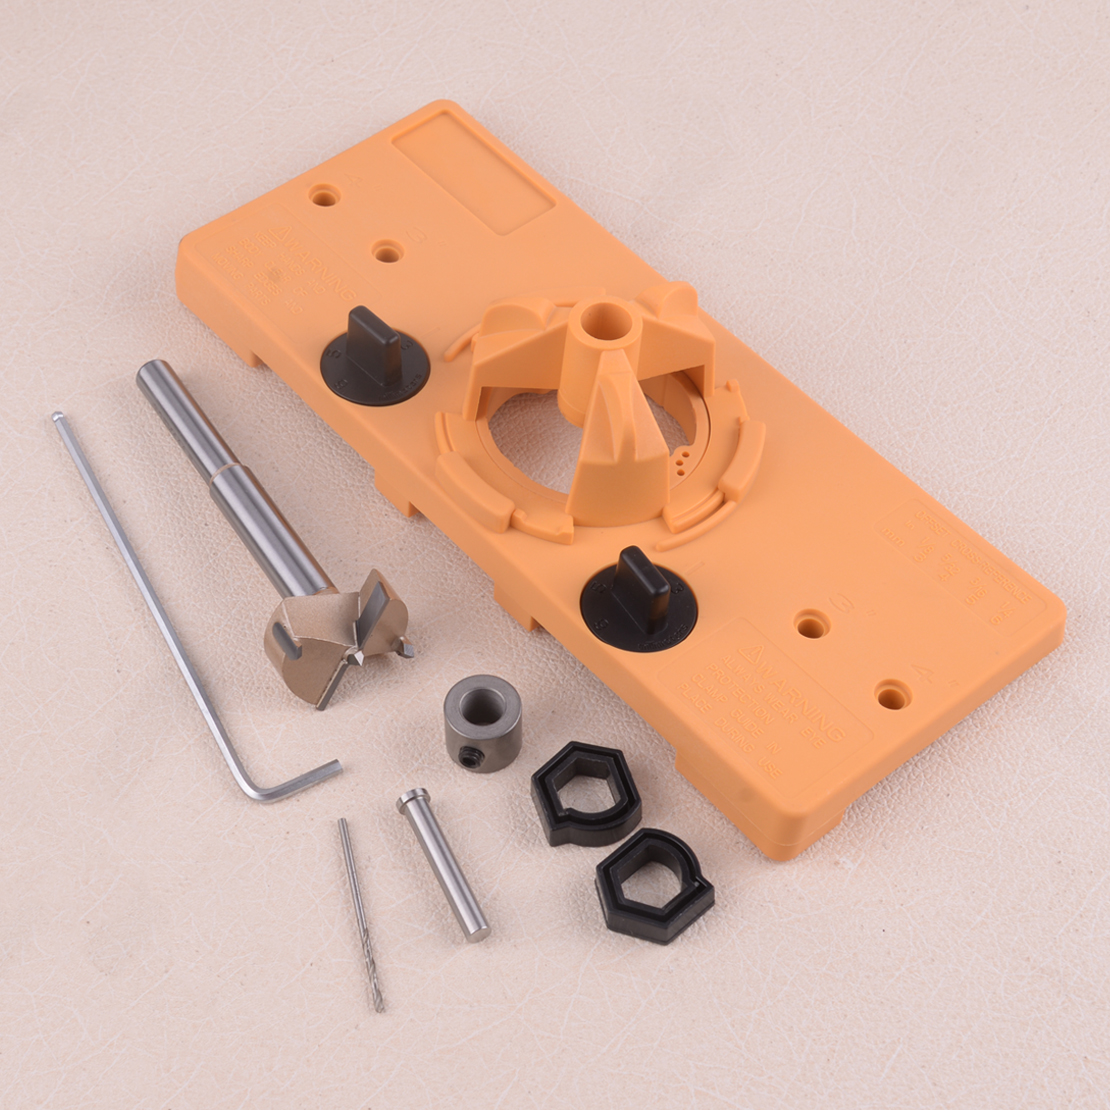 35MM Cup Style Concealed Hinge Jig Guide Set Boring Hole Template Bit Drill Woodworking